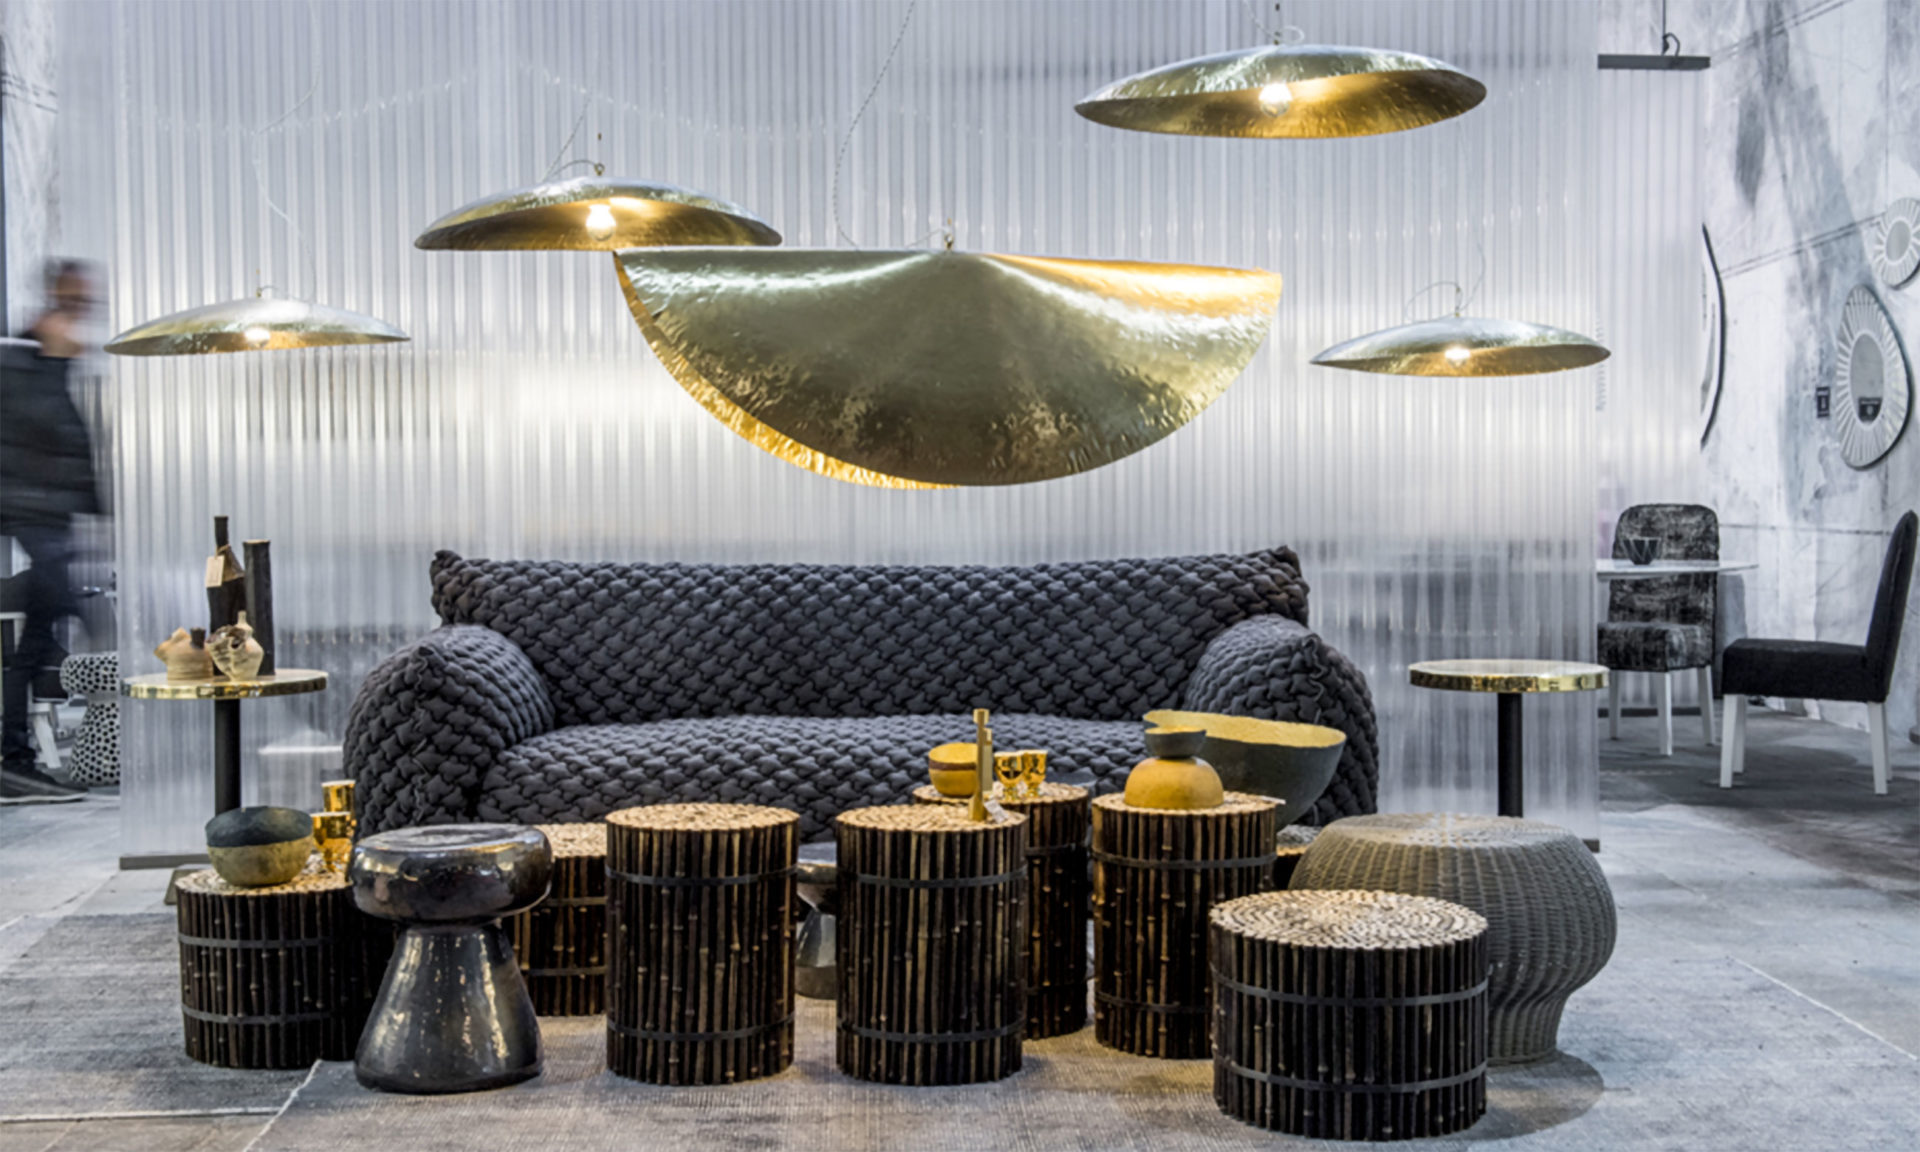 Photo courtesy of Maison & Objet